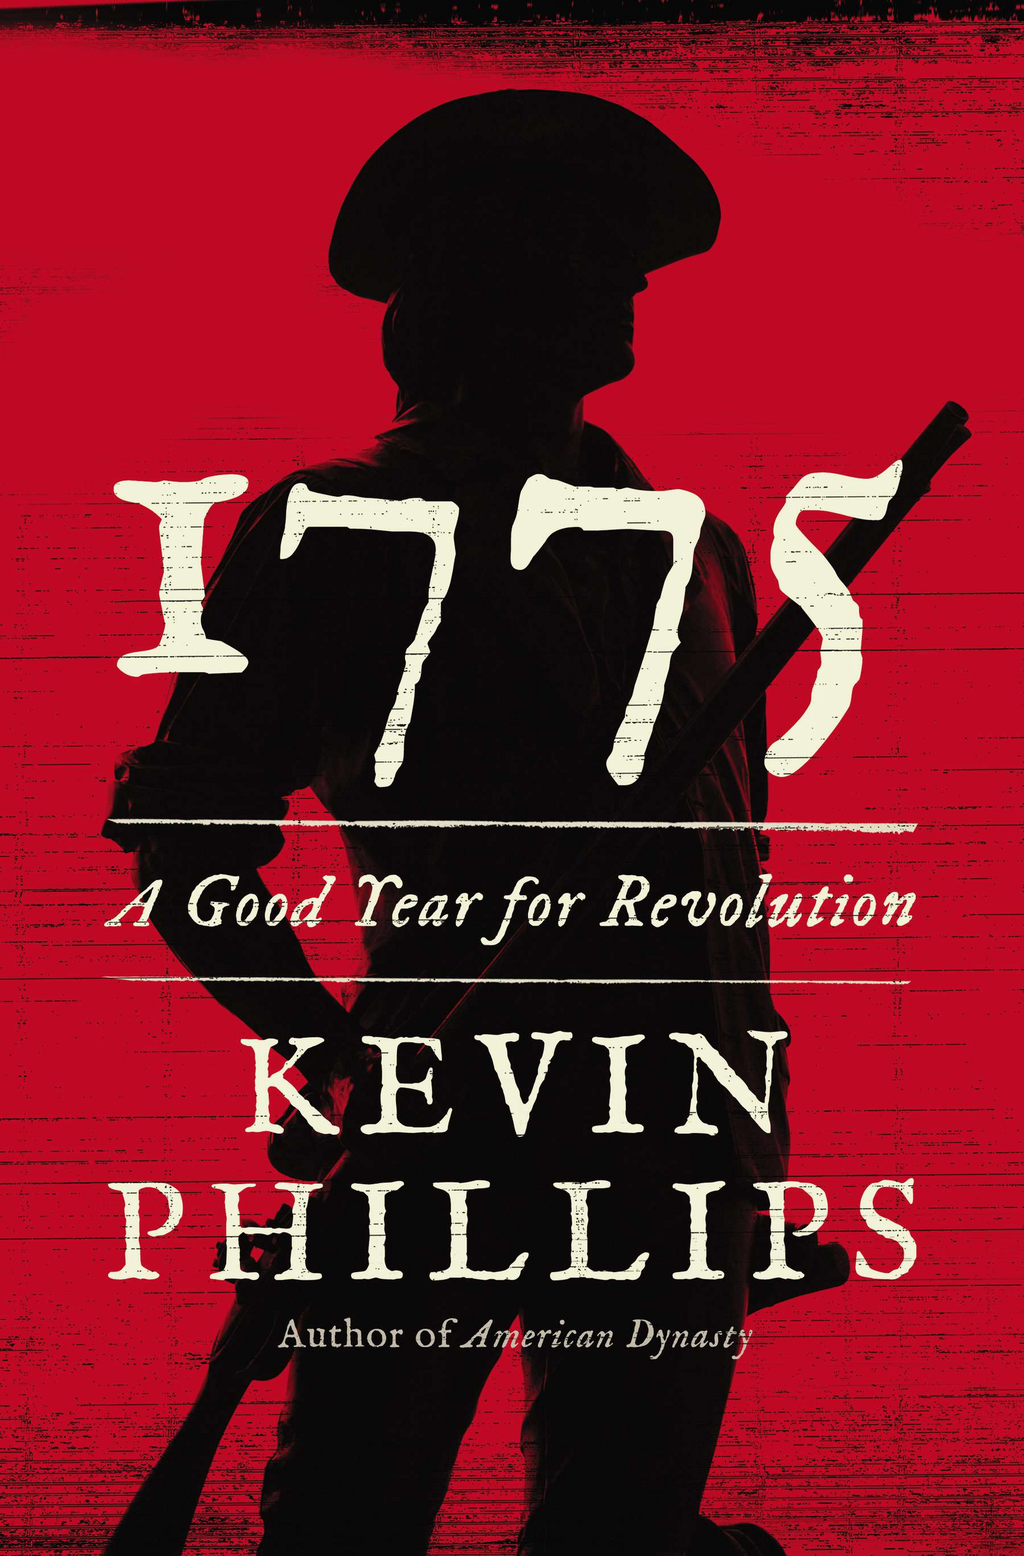 1775 By: Kevin Phillips